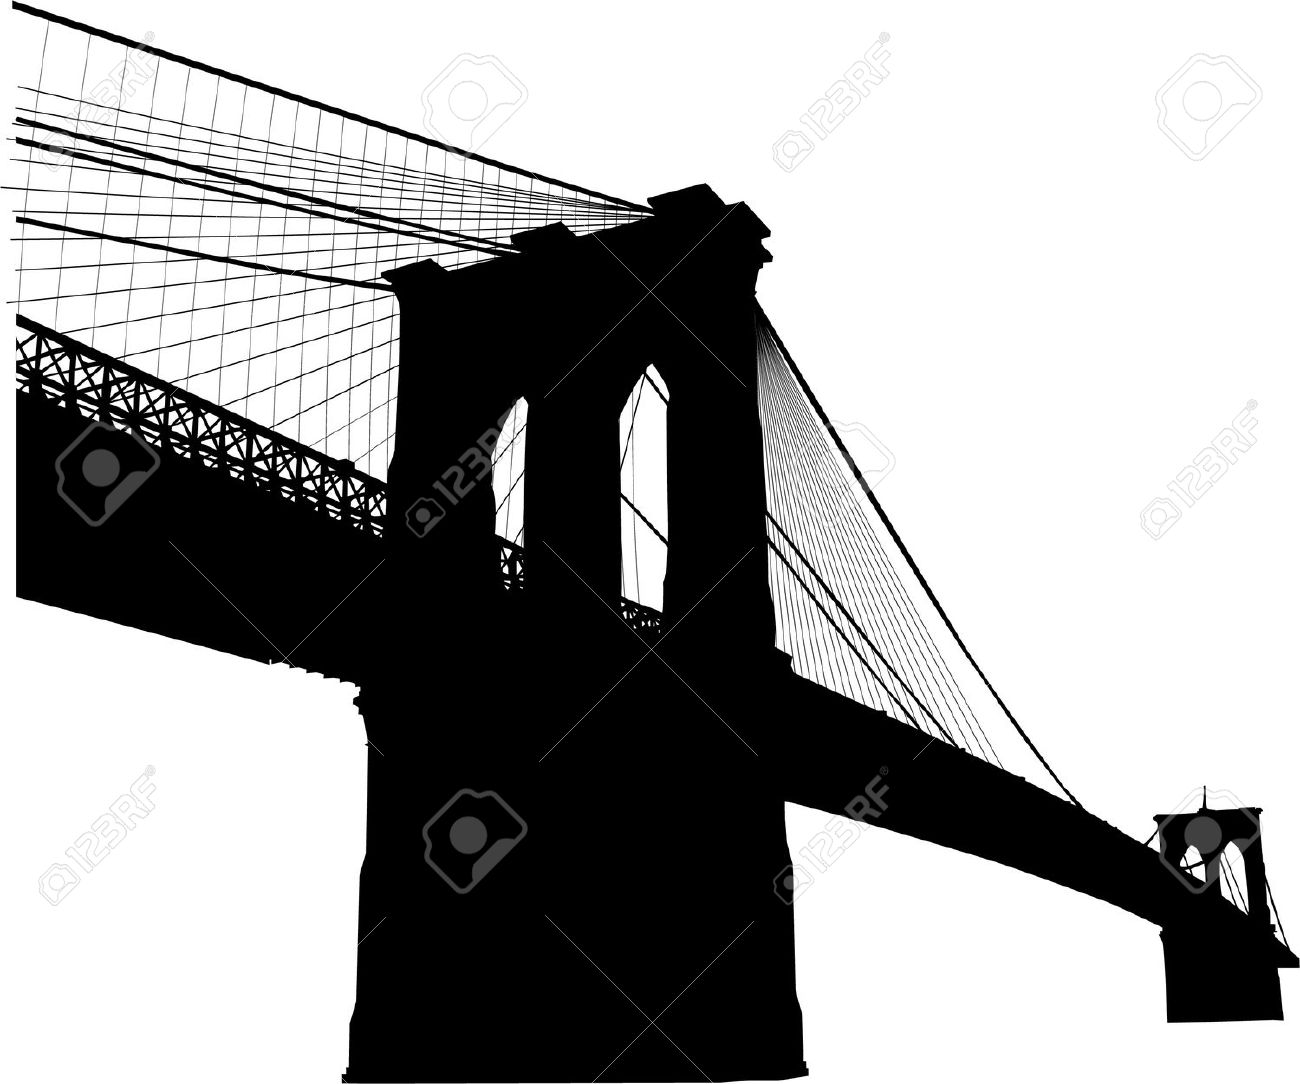 454 Brooklyn Bridge Cliparts, Stock Vector And Royalty Free.